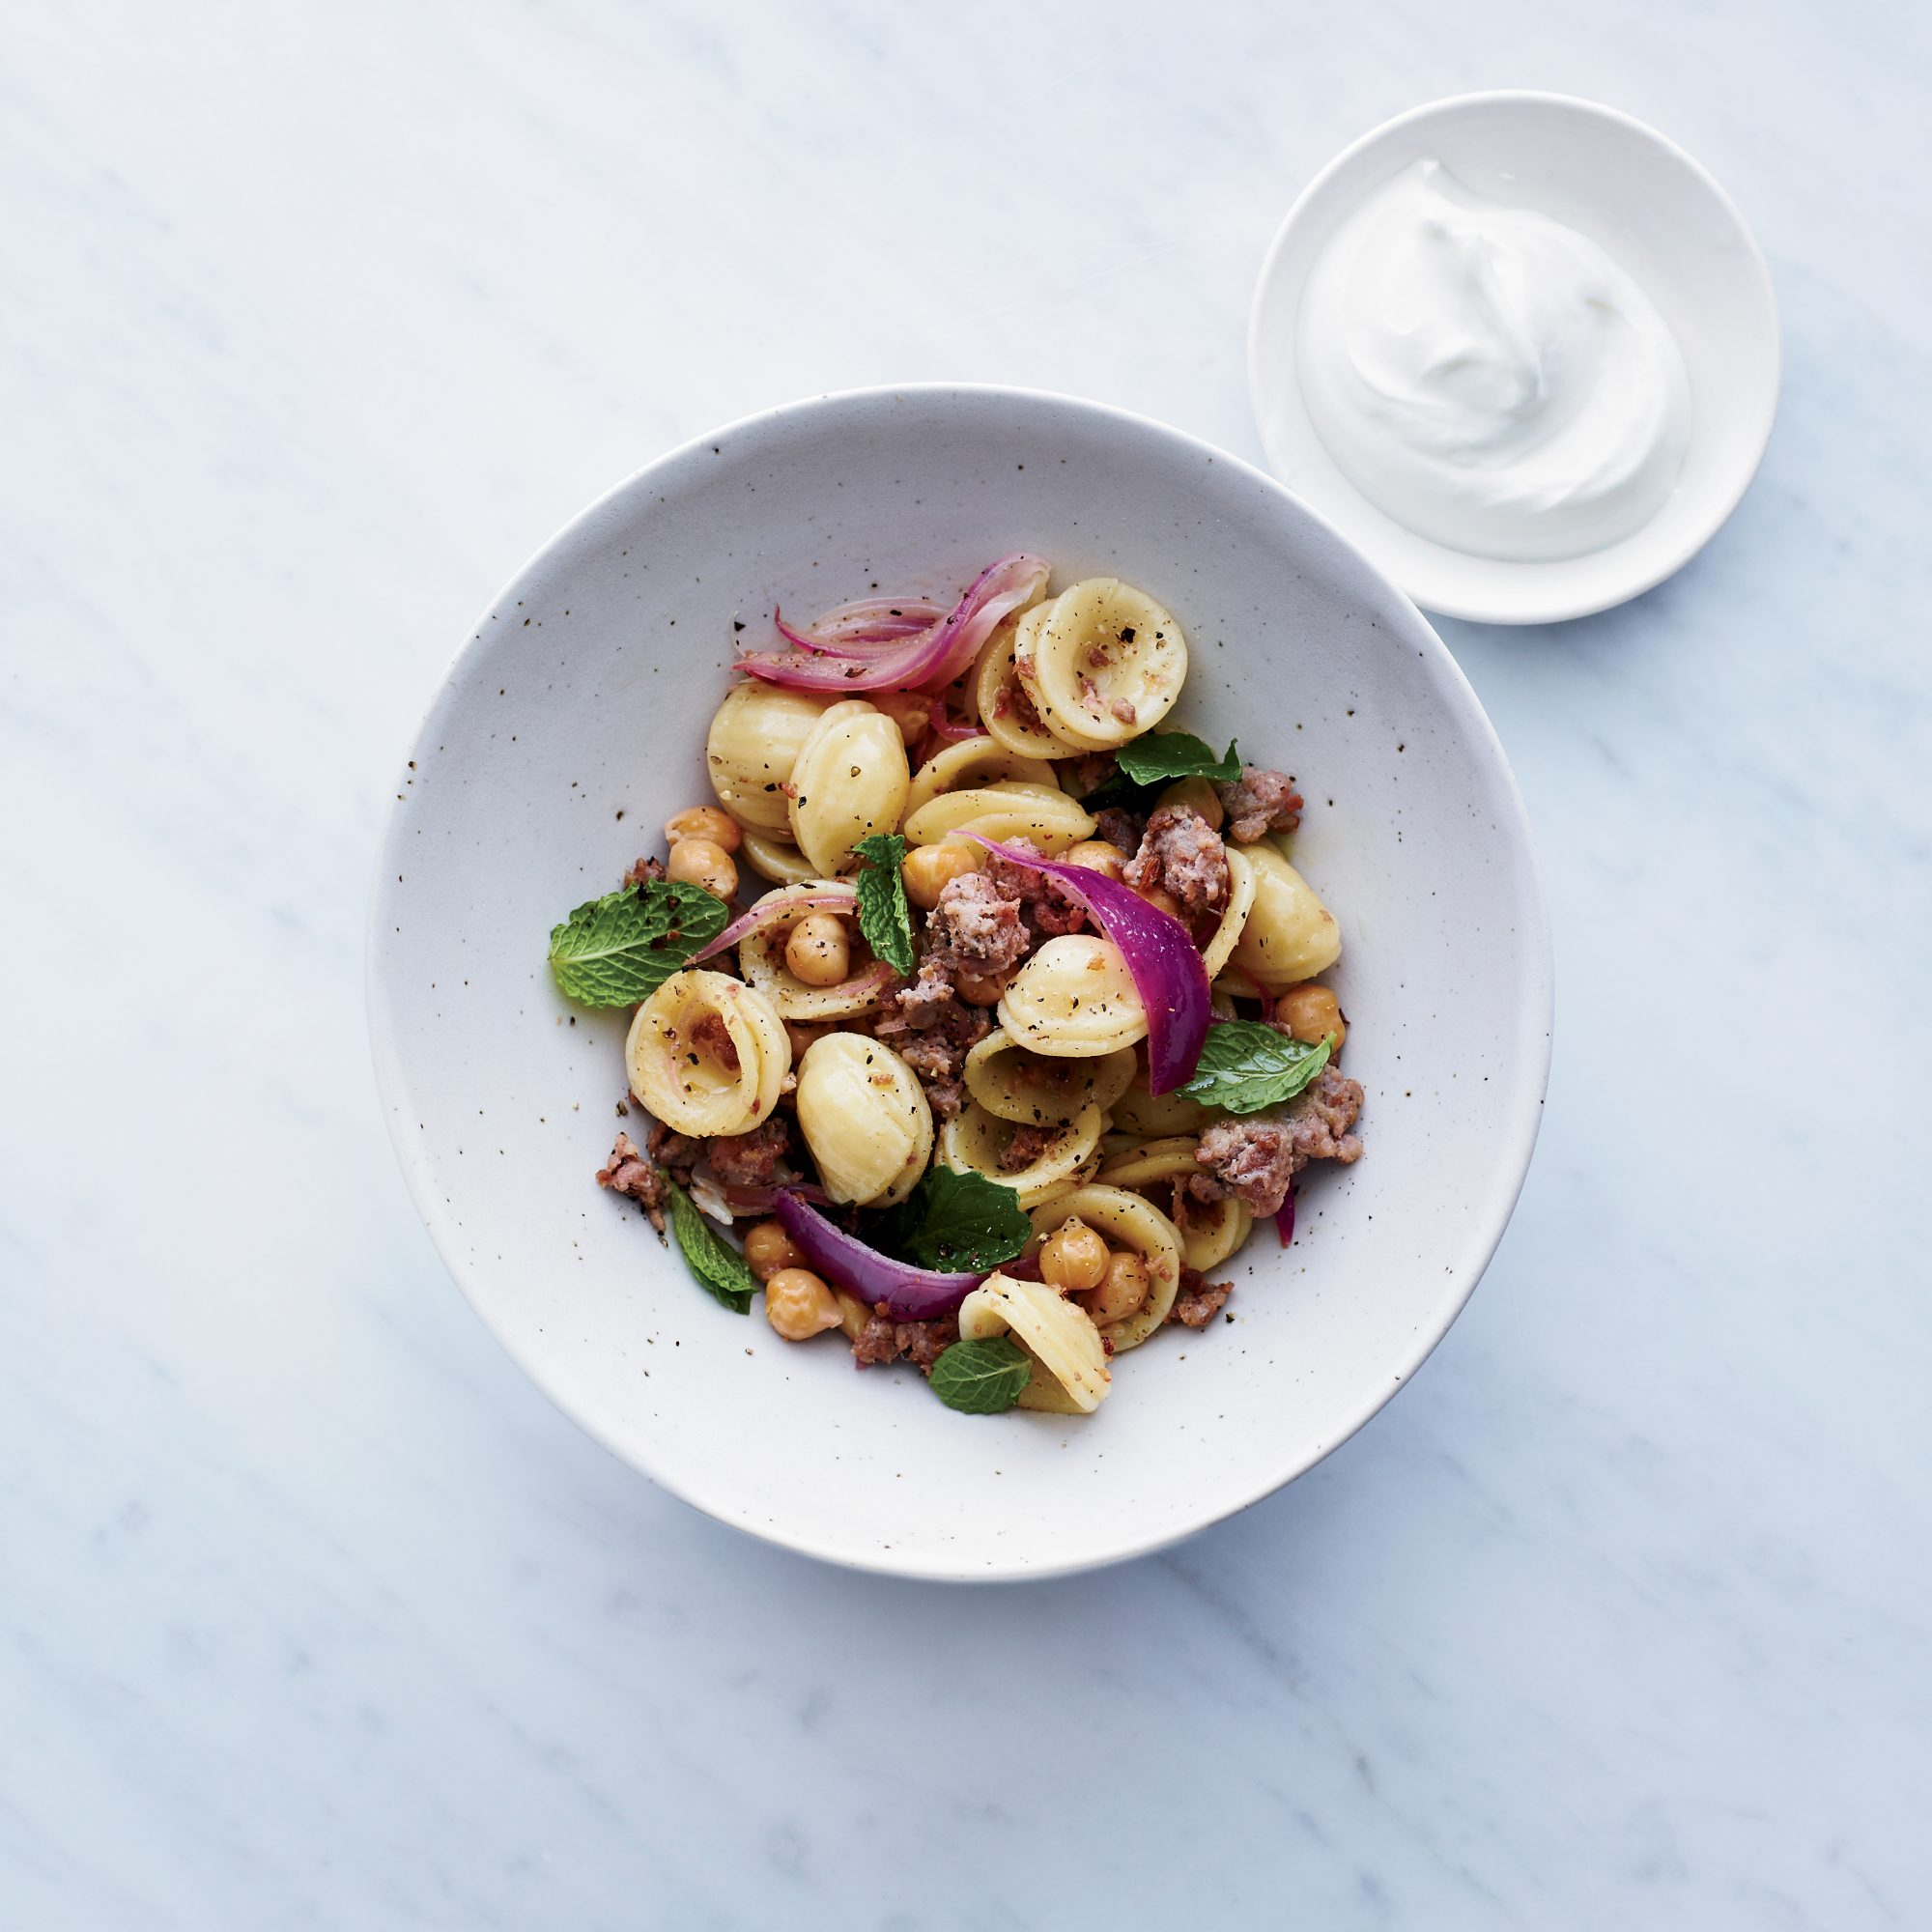 Orecchiette with Sausage, Chickpeas and Mint